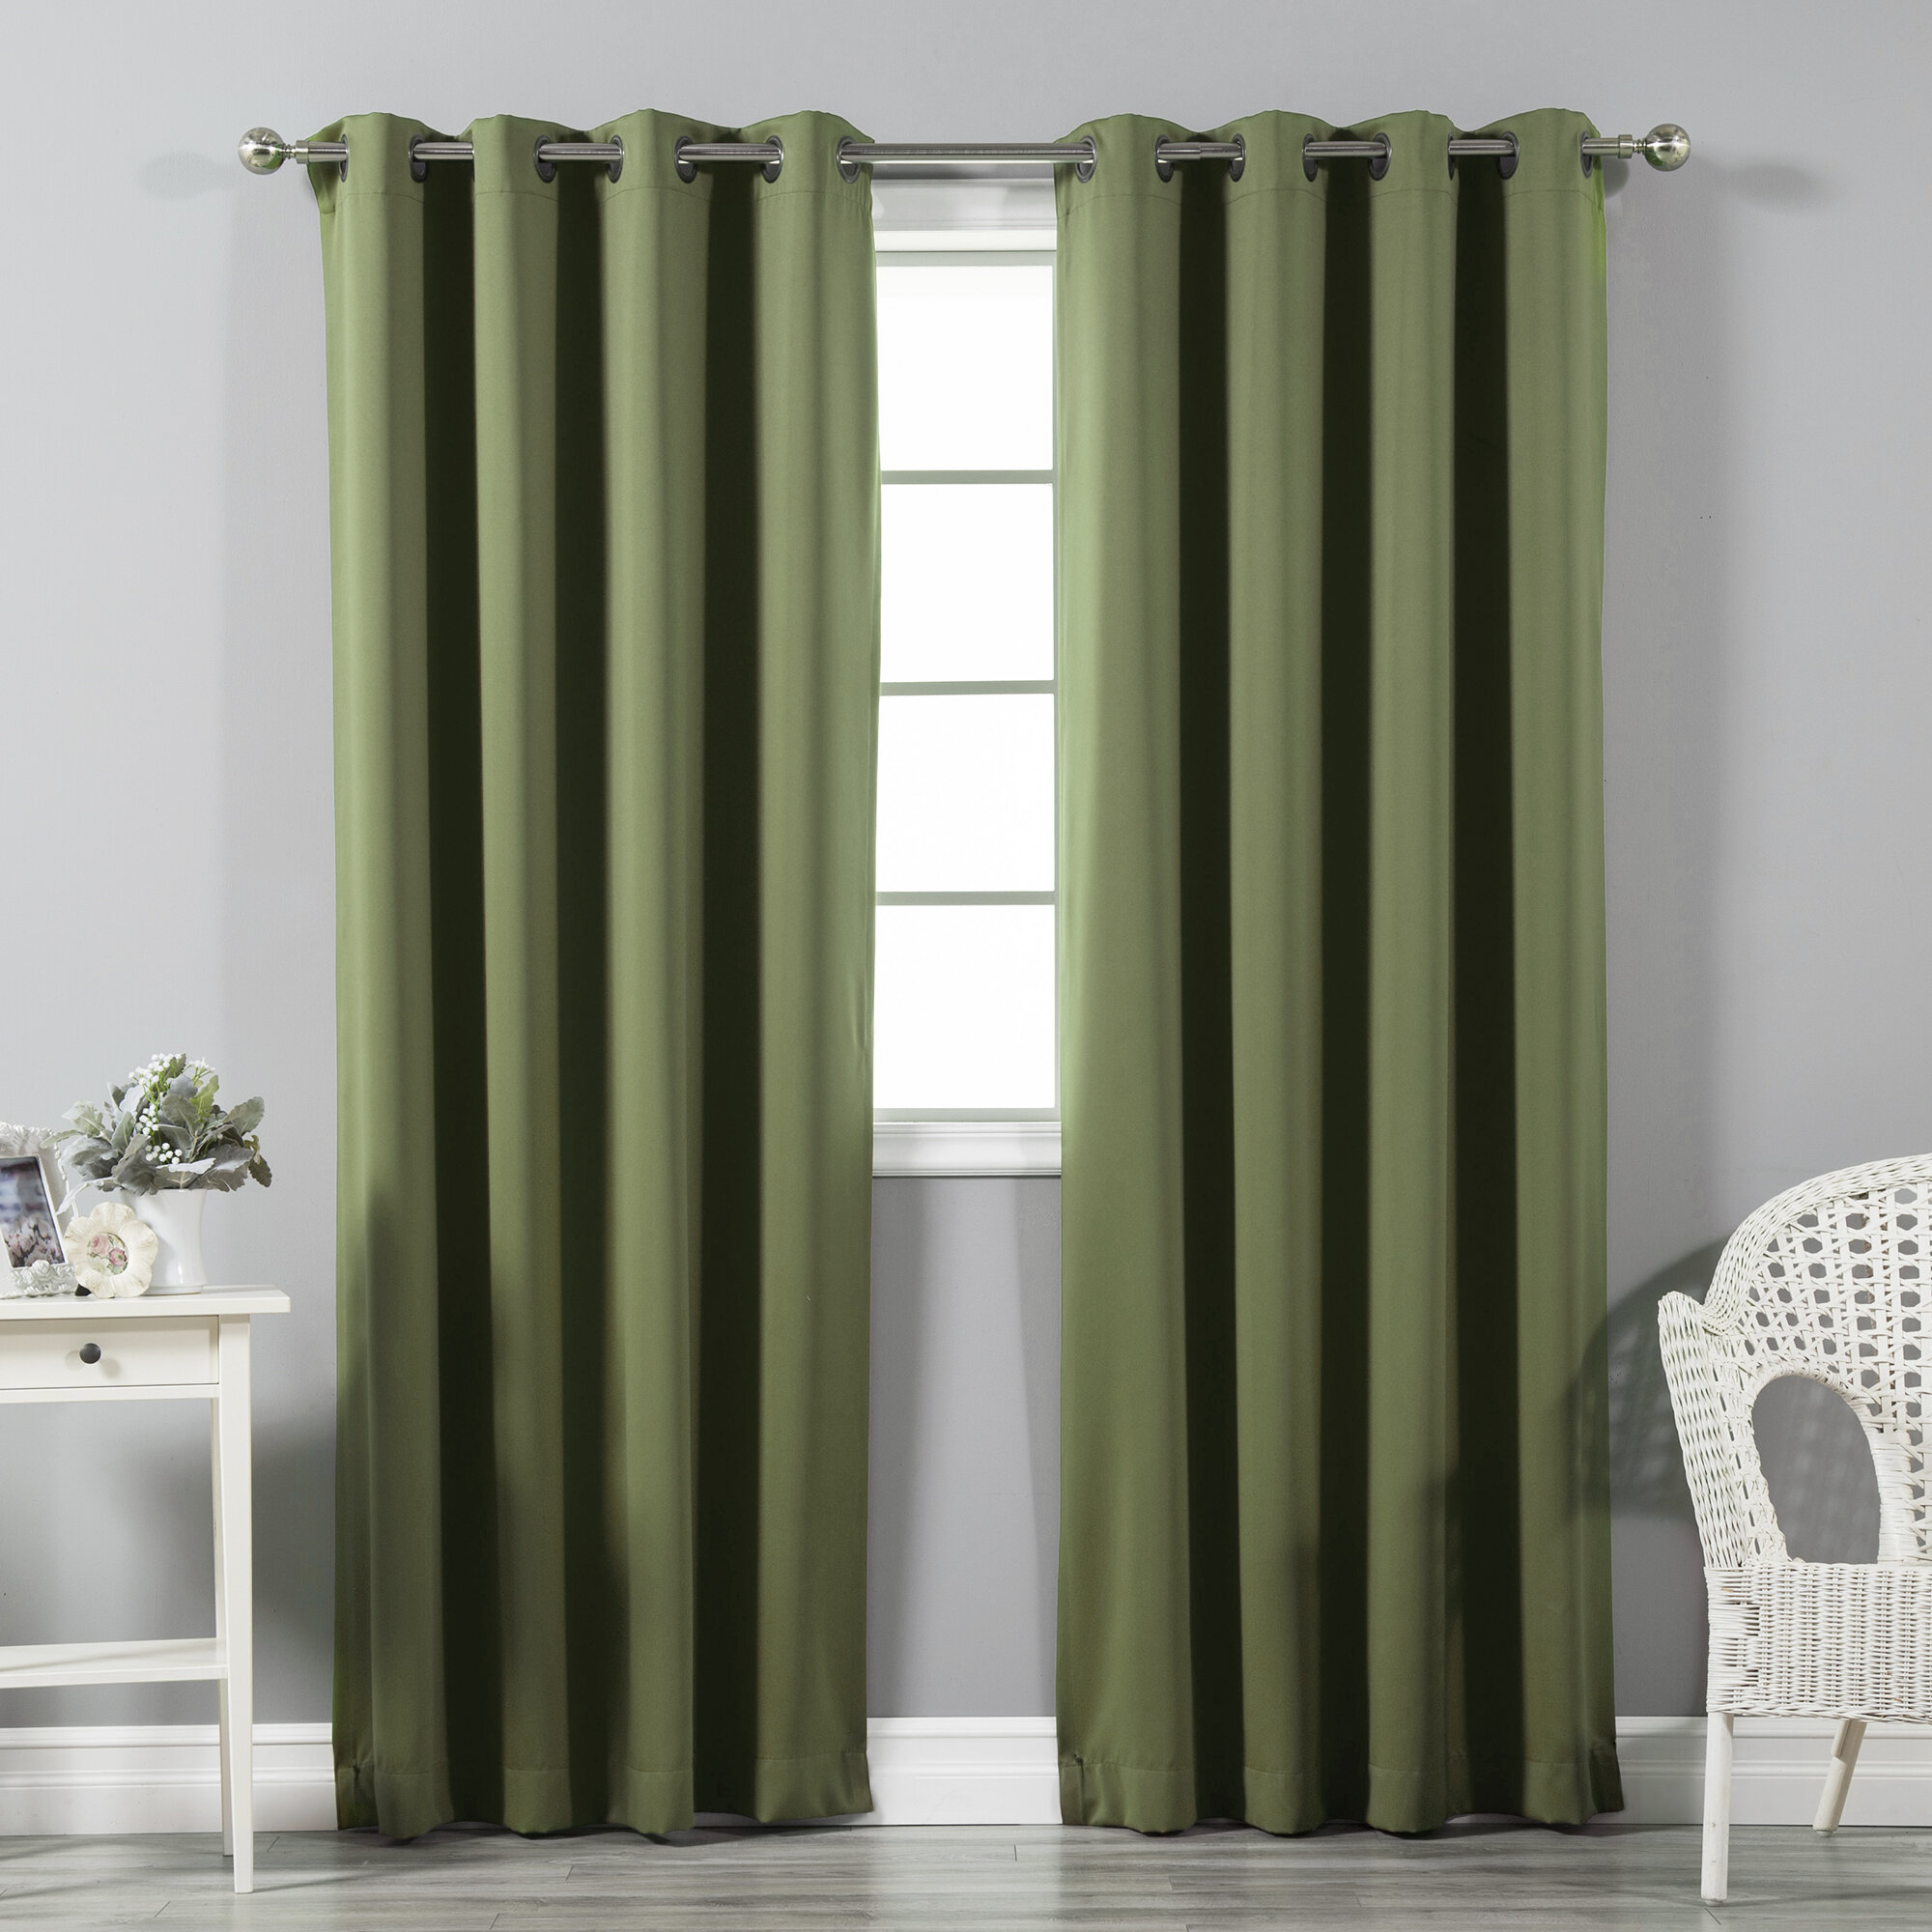 curtains me curtain room to rod for heat inch amazon resistant wrap ideal photogiraffe twilight or blackout com darkening is around design umbra